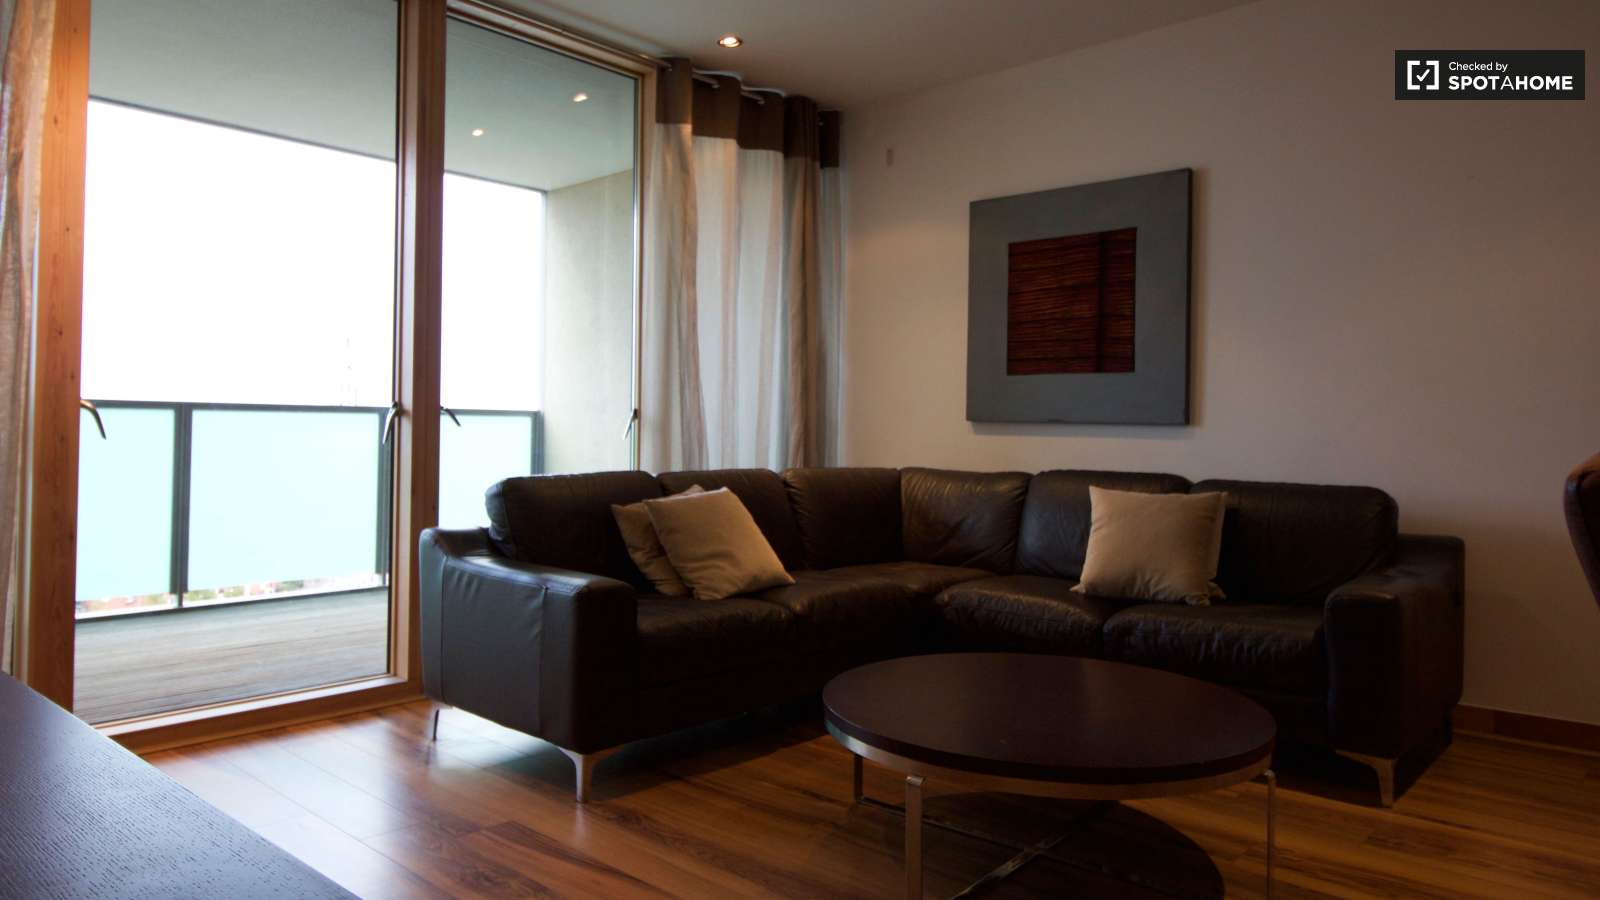 2 Bedroom Apartment With Utilities Included In Dublin Ref 97143 Spotahome